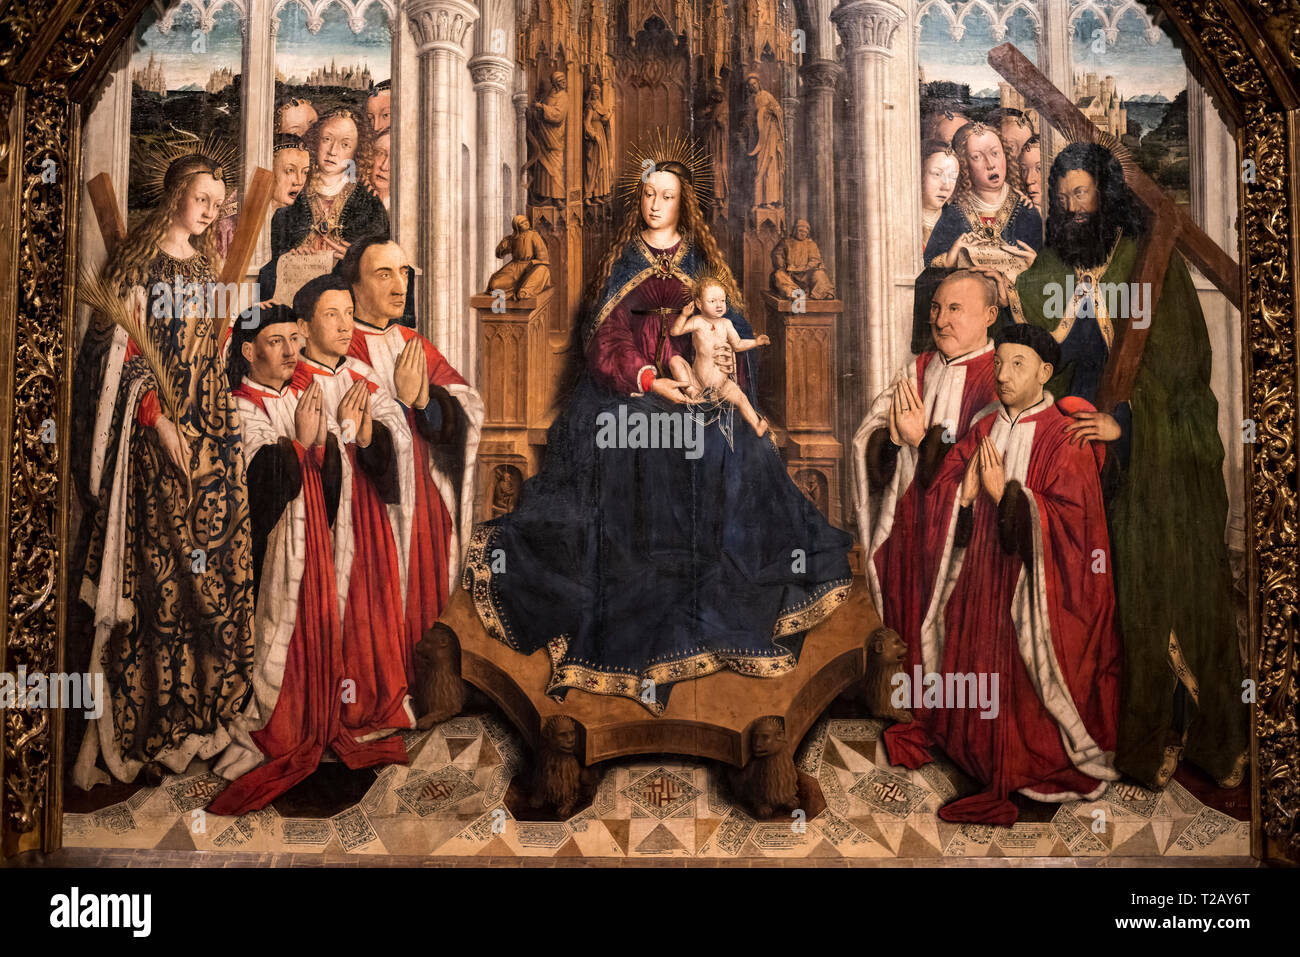 Gothic medieval art in the National Art Museum of Catalonia,Barcelona,Spain.Lluís Dalmau painter, Mare de Déu dels consellers (1443-1445) - Stock Image